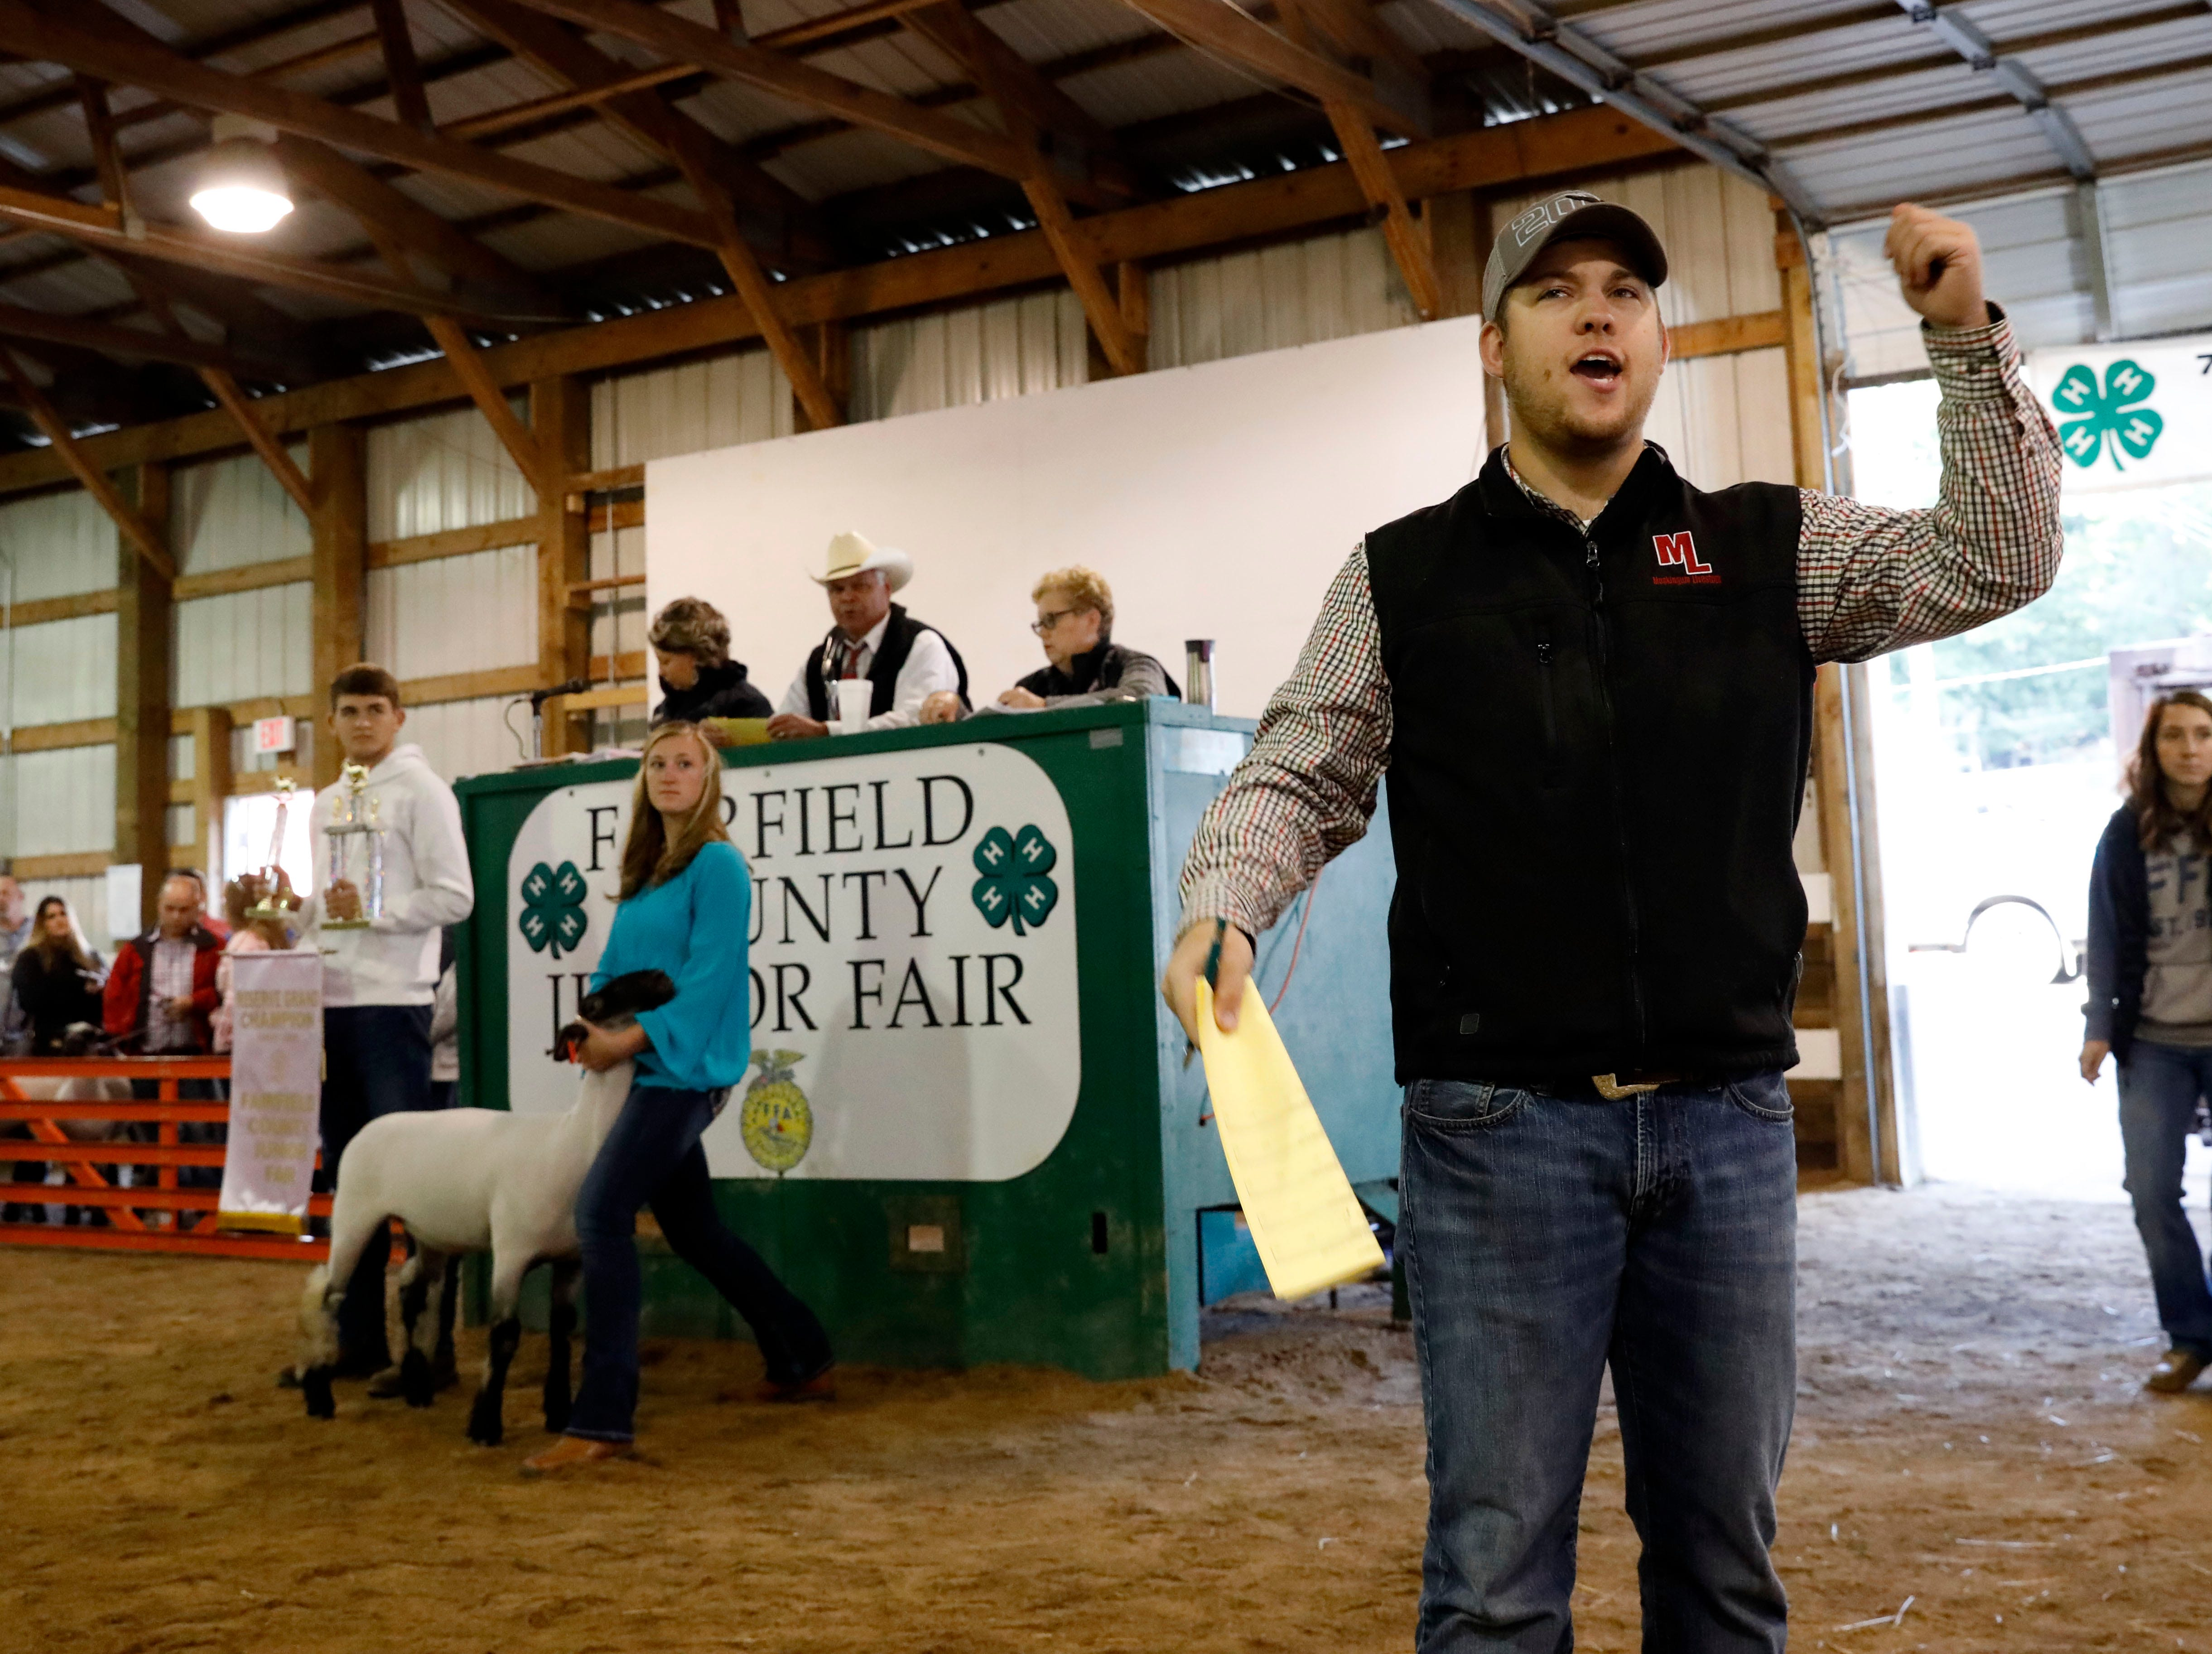 The Fairfield County Fair Junior Fair livestock auction continued Friday morning, Oct. 12, 2018, at Feeder Creek Show Arena on the fairgrounds in Lancaster.